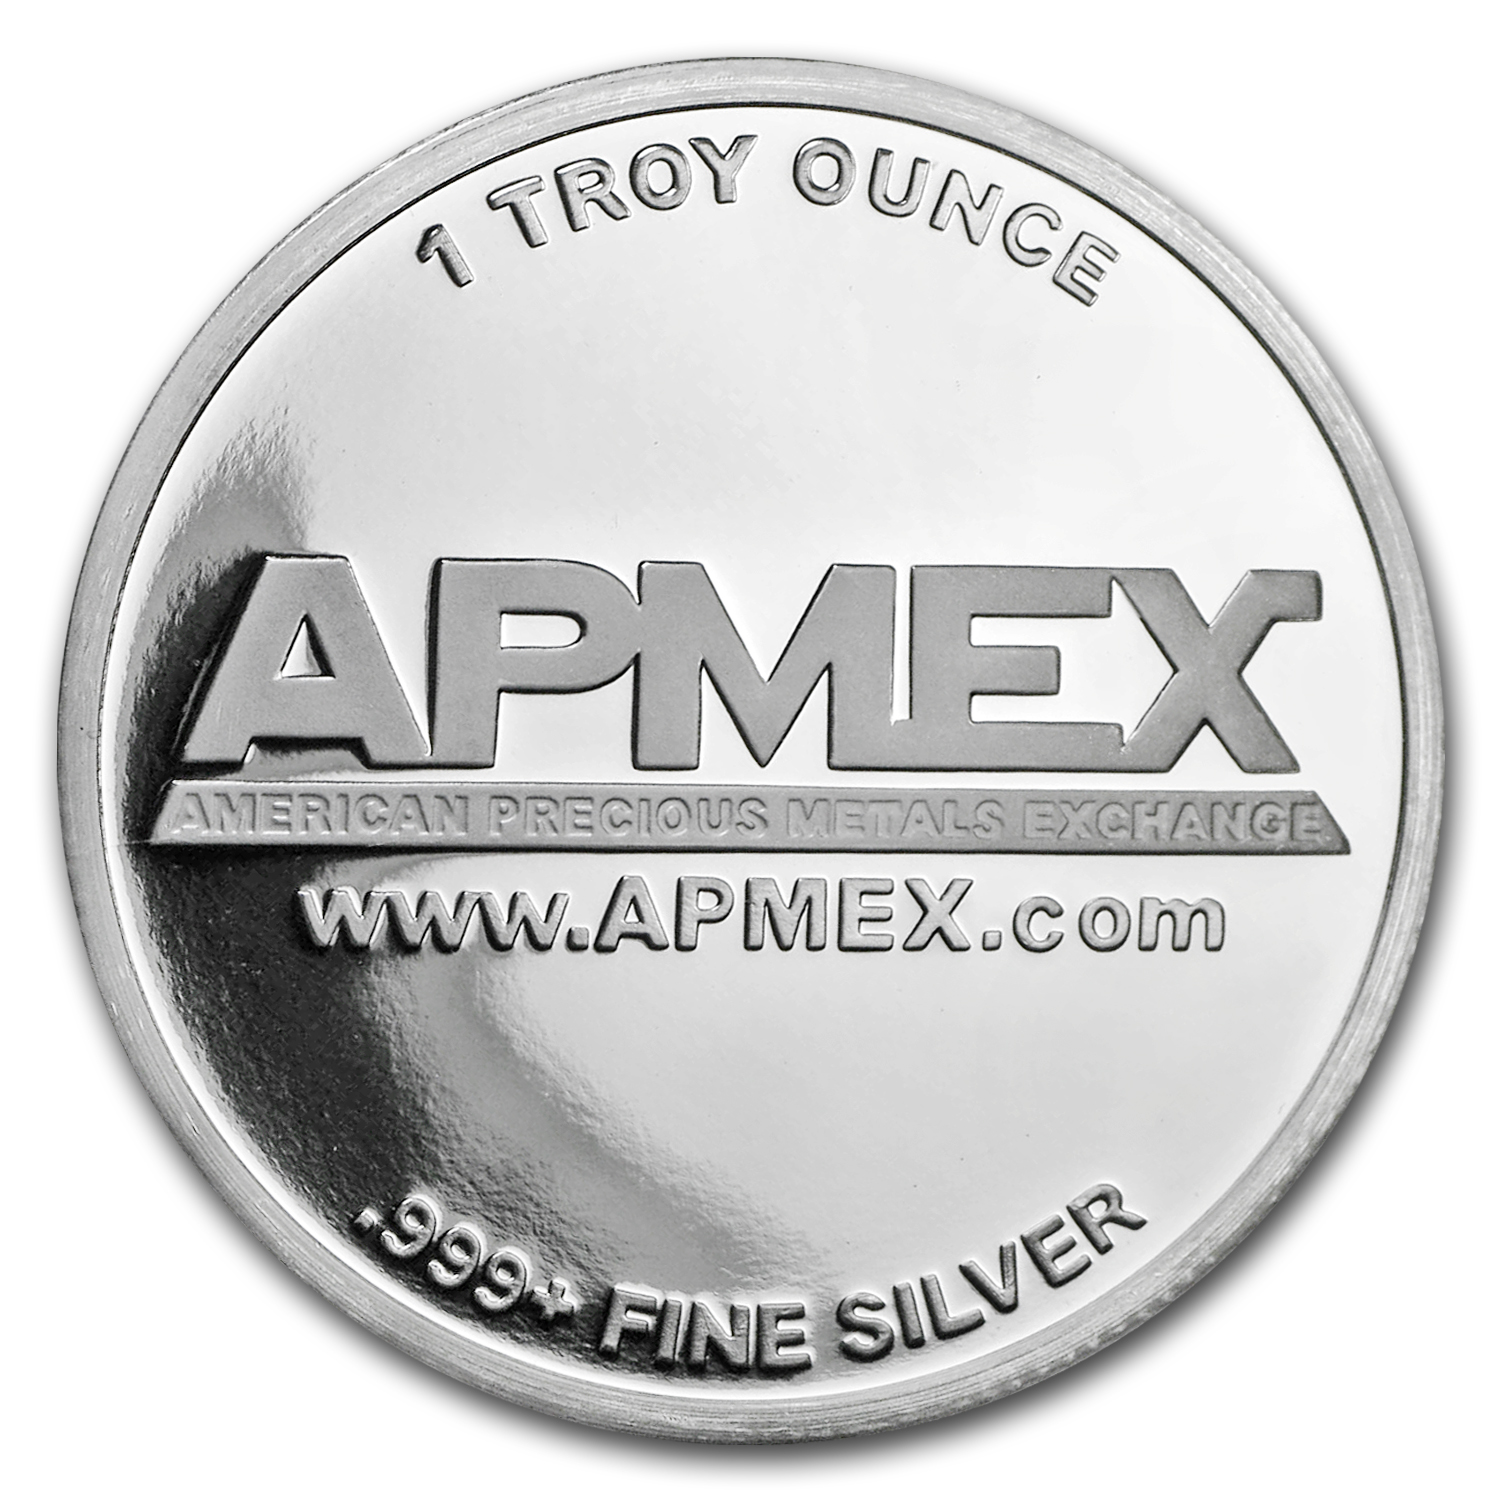 1 oz Silver Colorized Round - APMEX (Easter Egg Hunt)